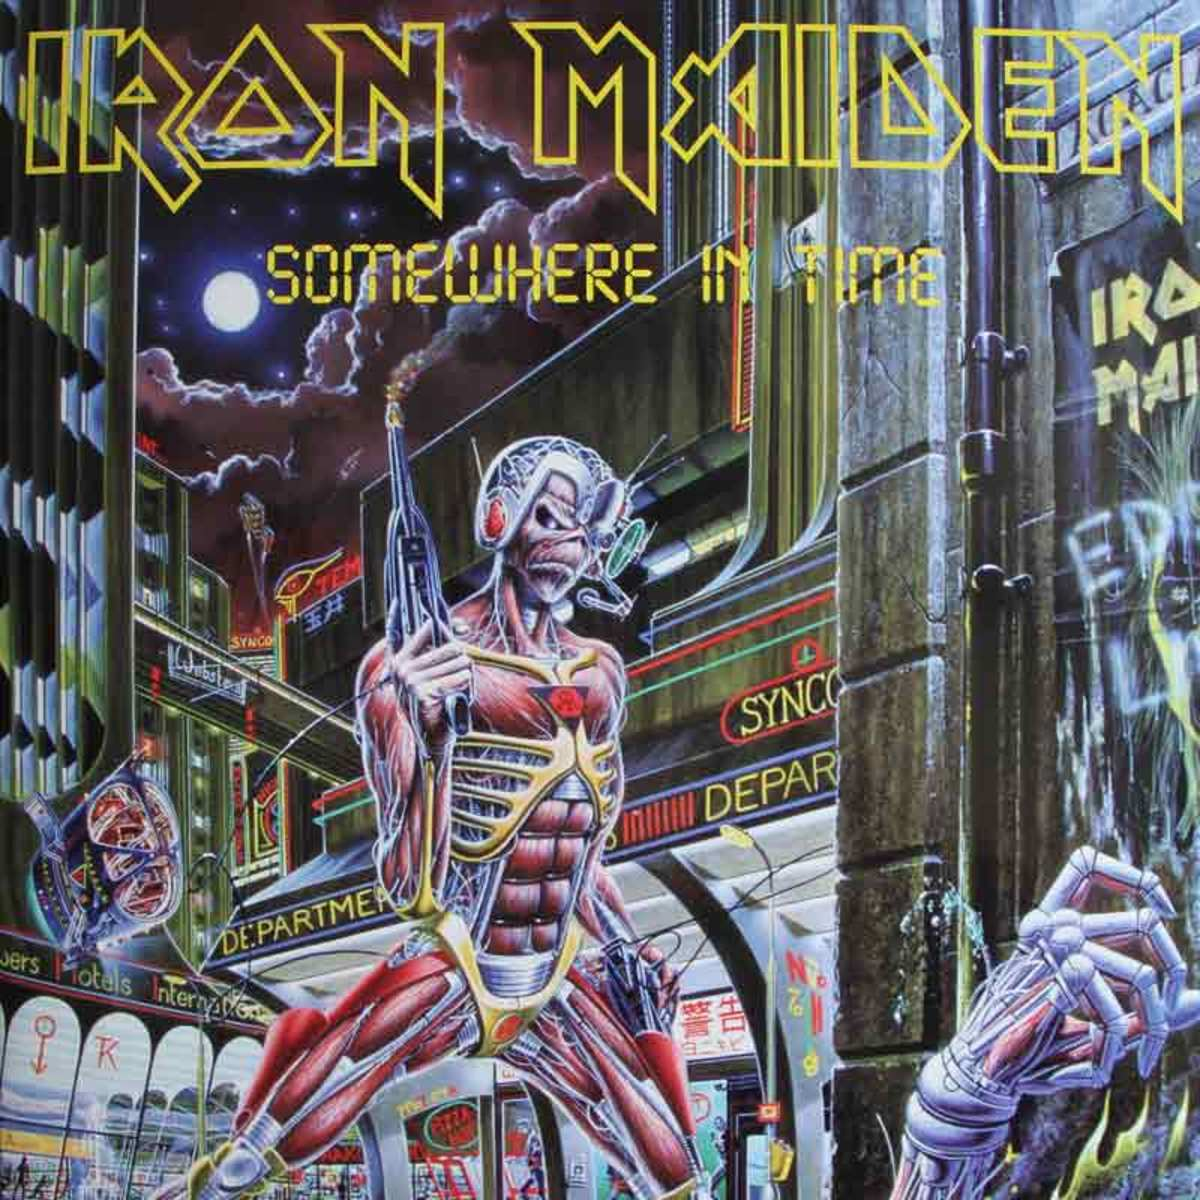 "Iron Maiden ""Somewhere In Time"" Capitol Records SJ-12524 12"" LP Vinyl Record U.S. Pressing (1986) Album Cover Art by Derek Riggs"